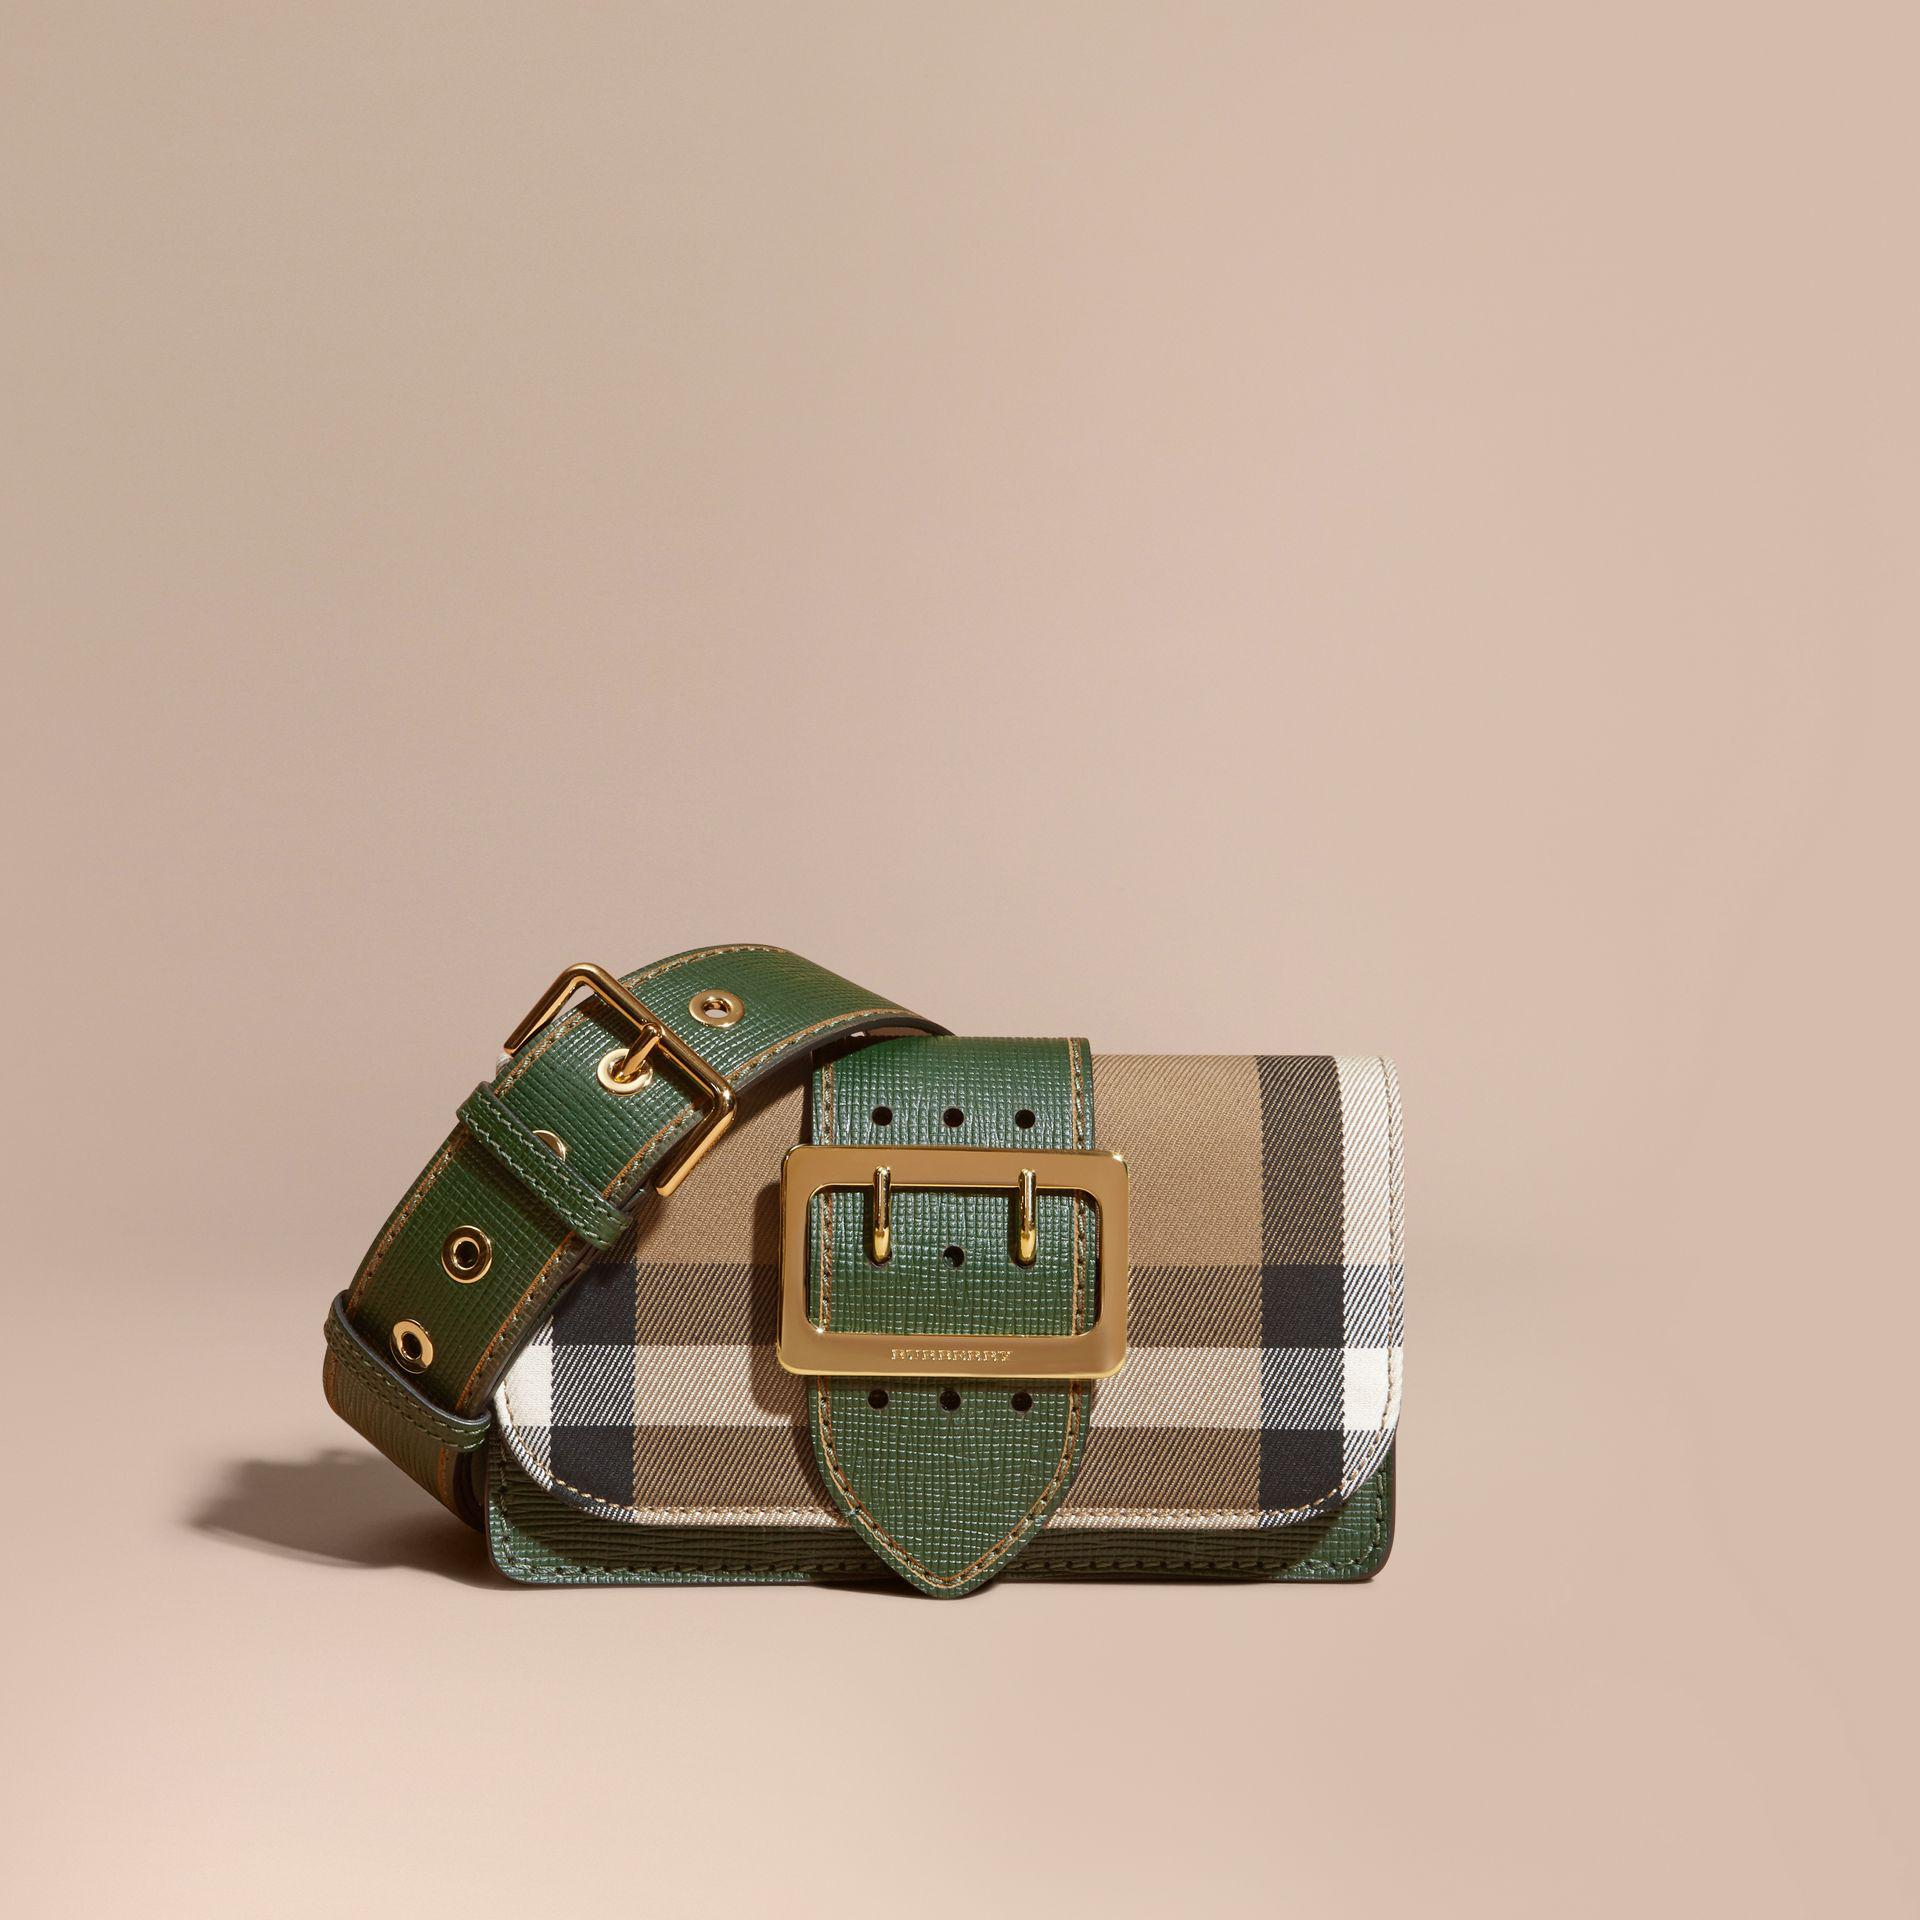 70c060d1132 Burberry Small Buckle House Check And Leather Shoulder Bag in Green ...